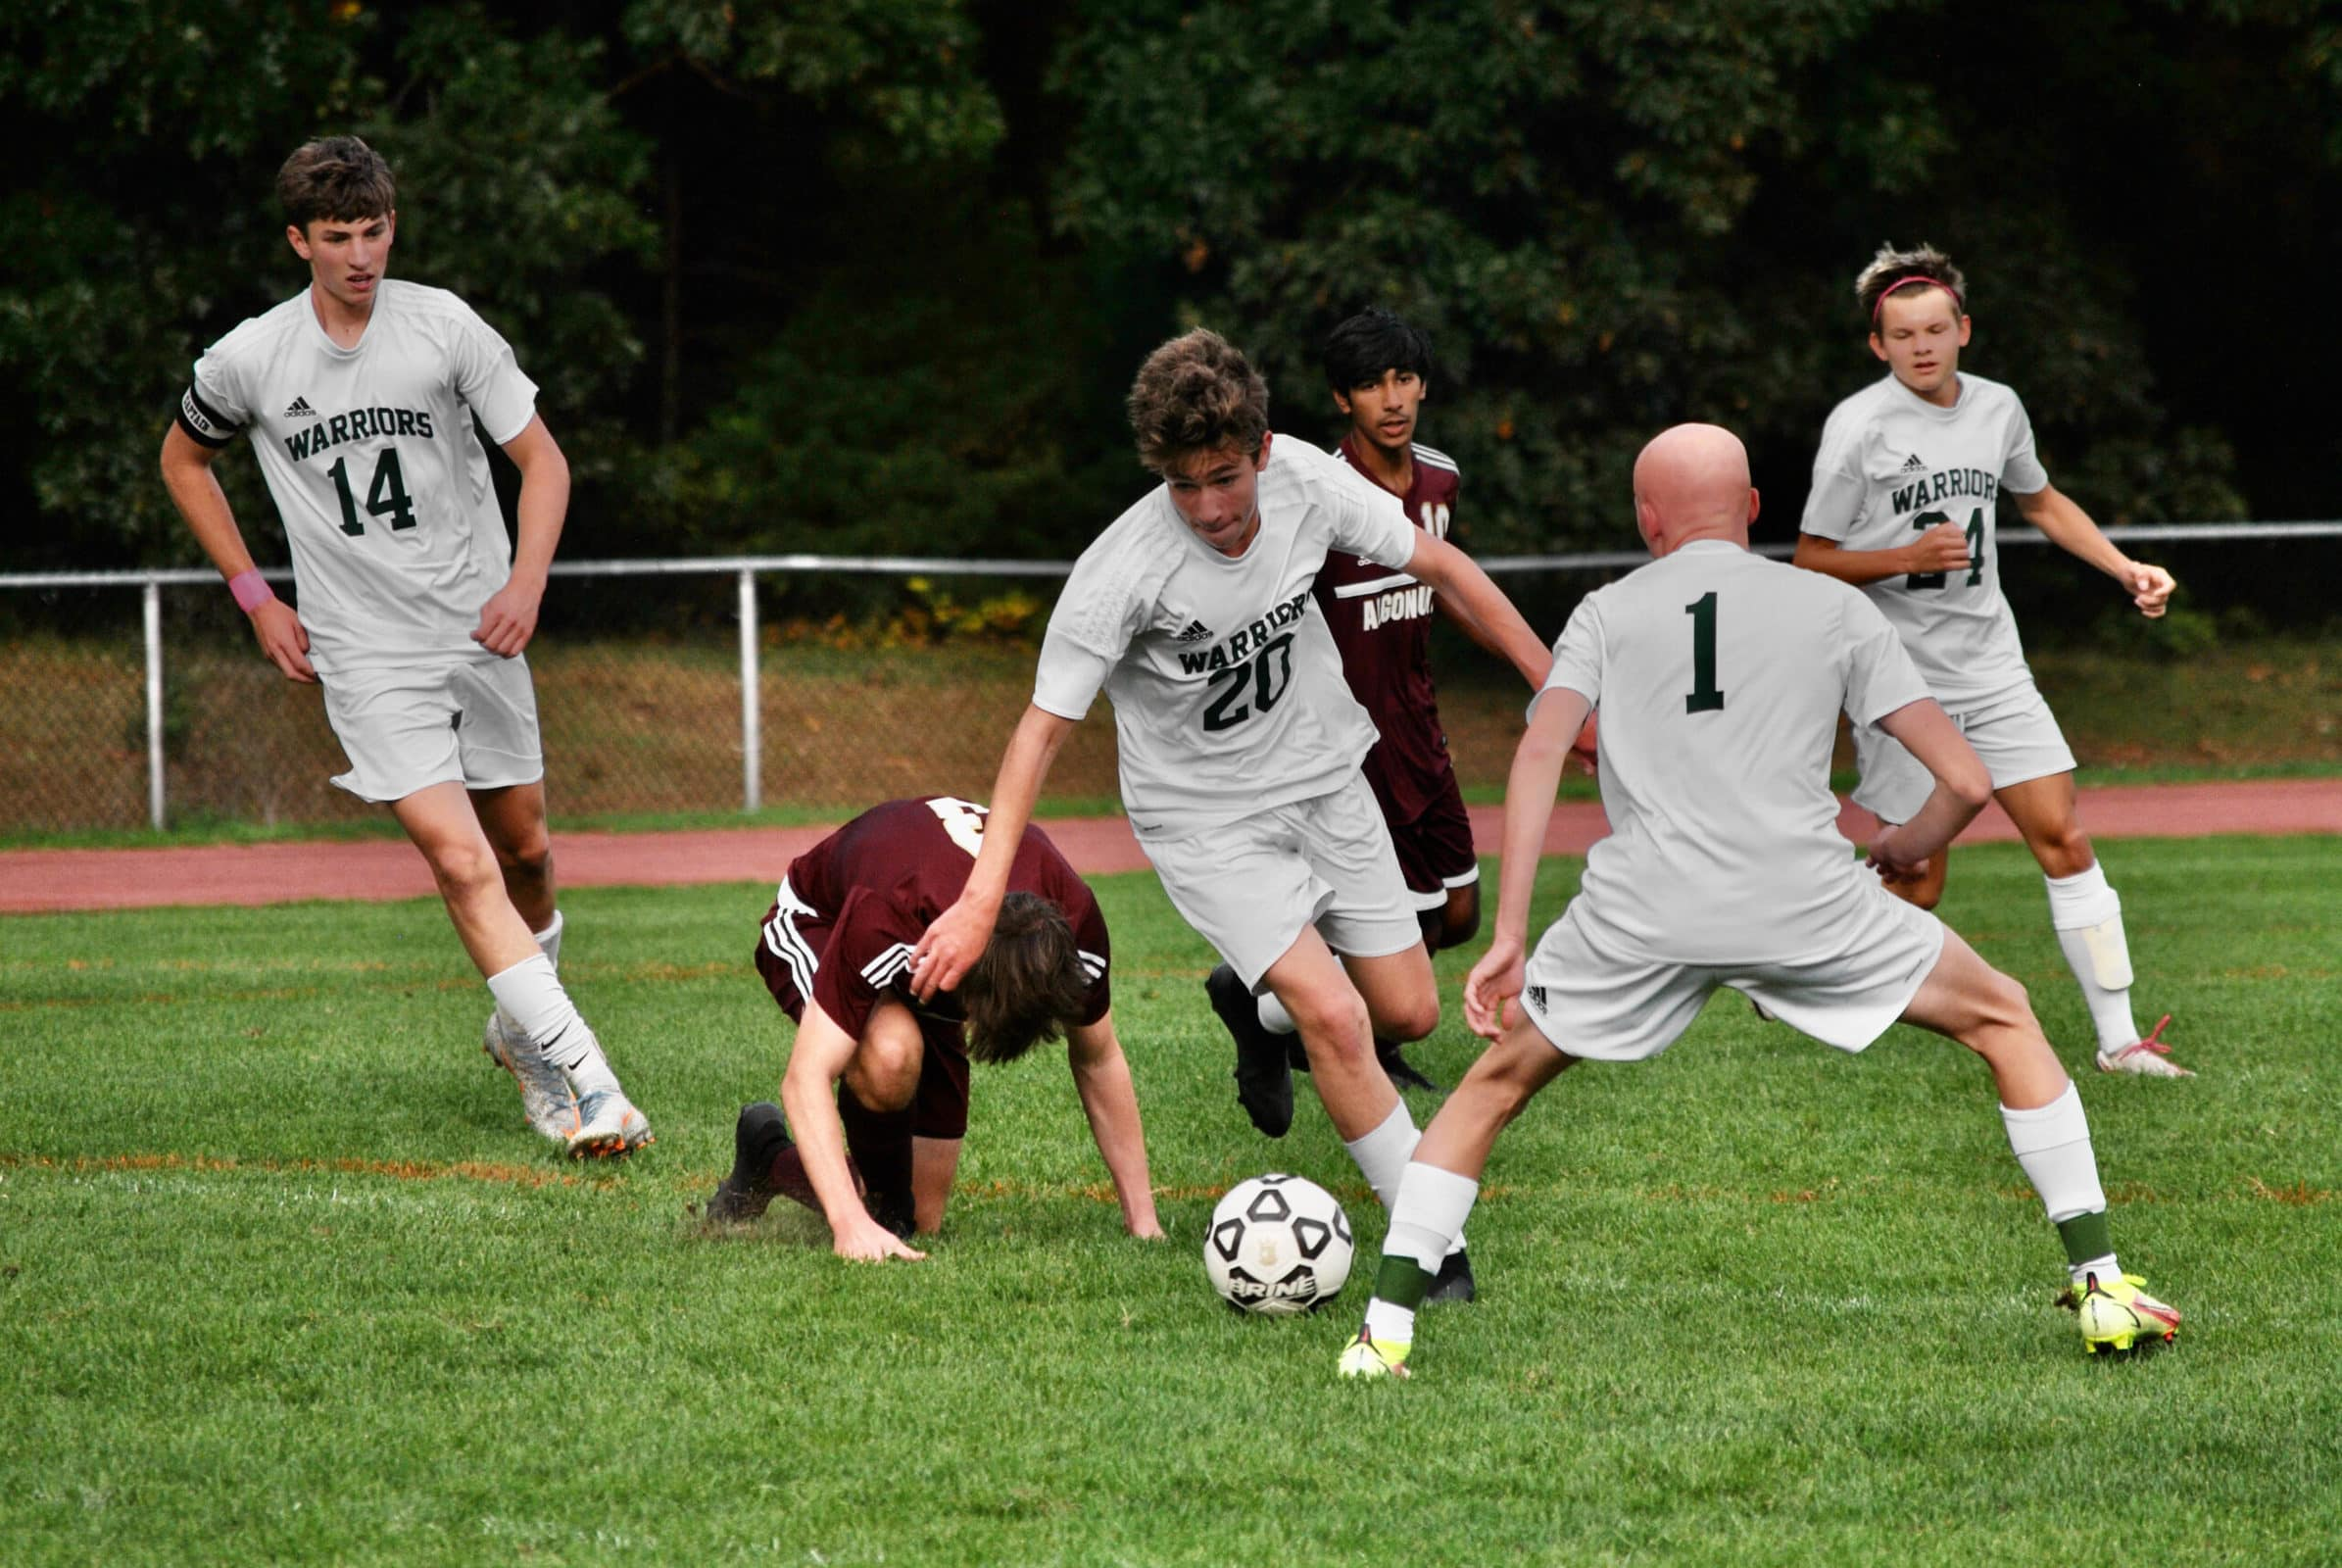 Tantasqua players charge towards Algonquin's goal after knocking down Algonquin's Conor Hoolahan.